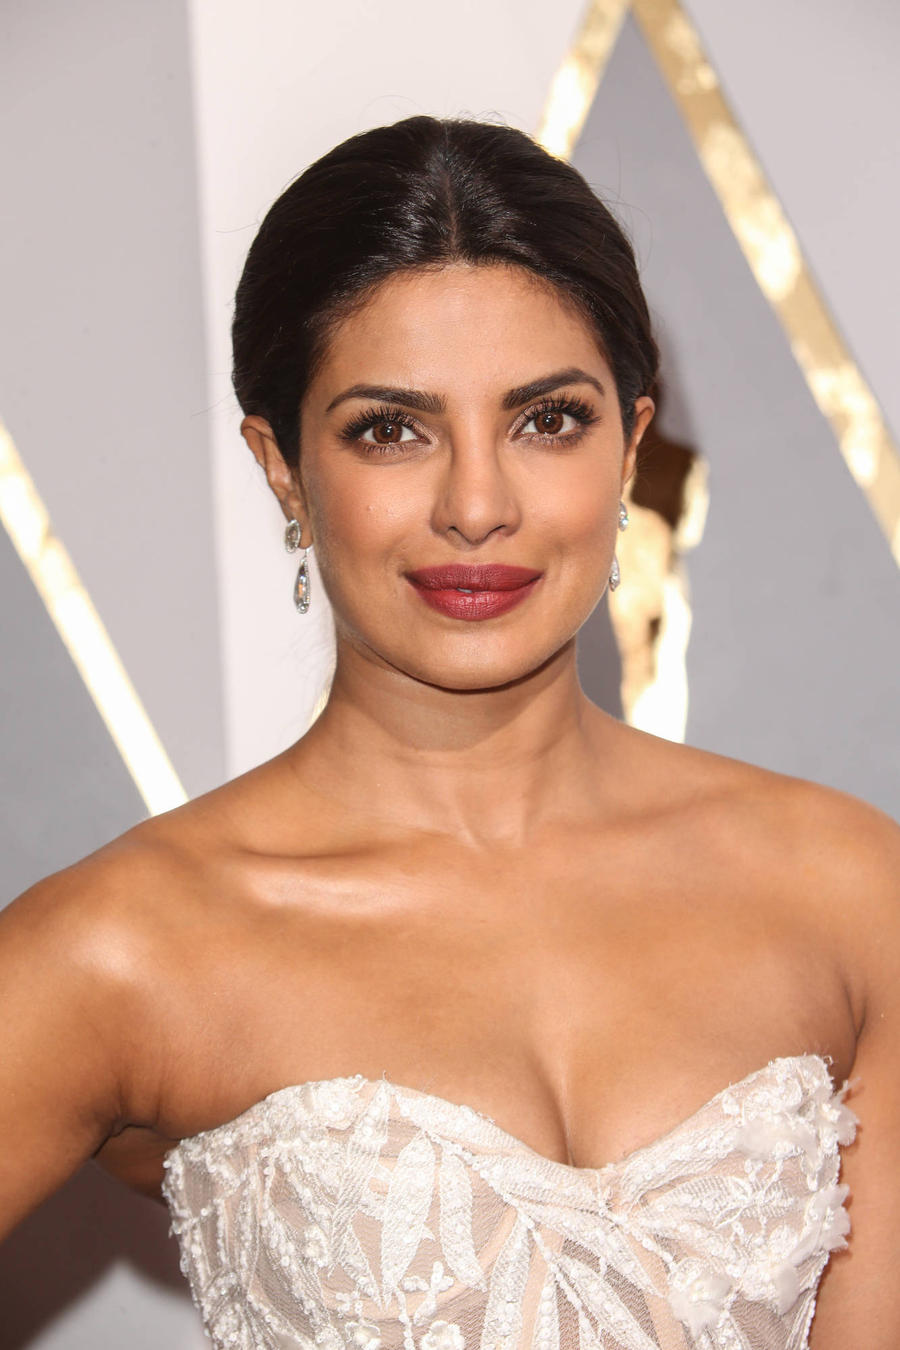 Priyanka Chopra: 'Girls Called Me Brownie At School'